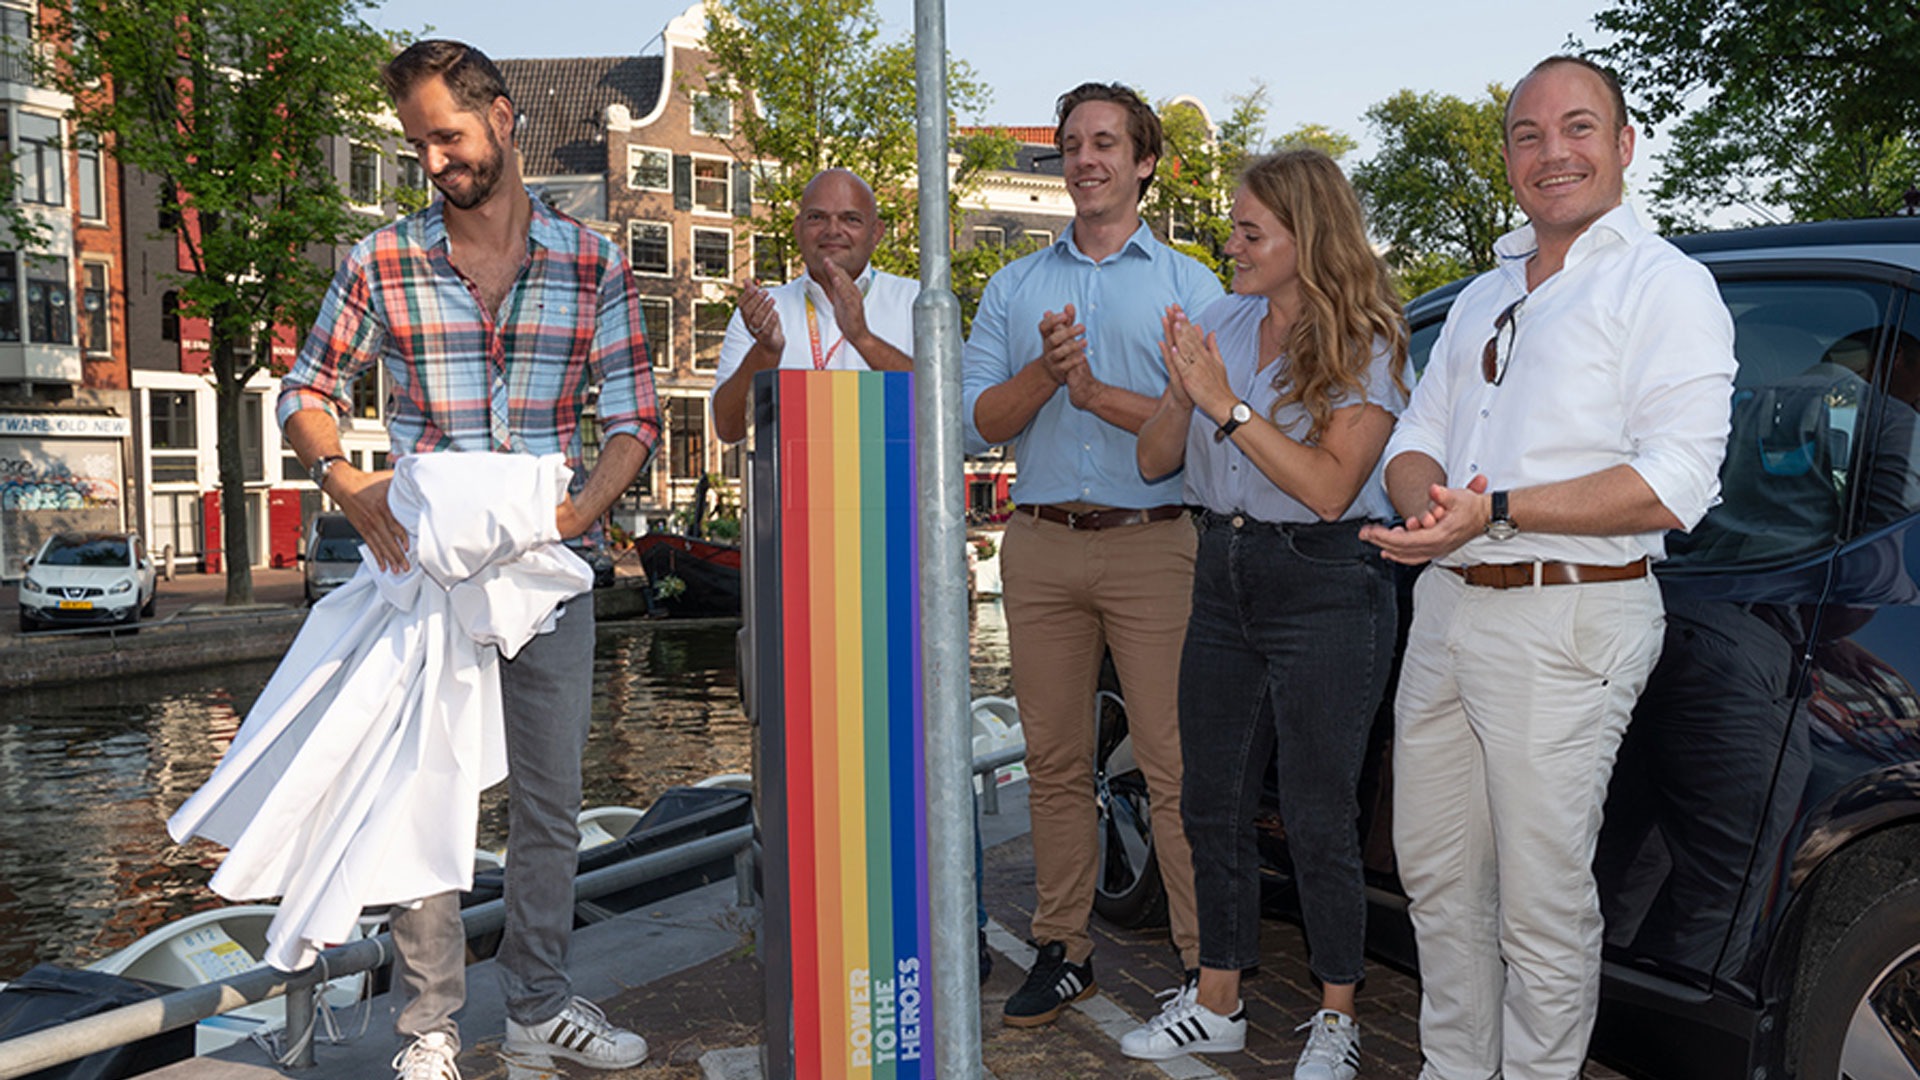 Job Karstens (EVBox), Ronald Stahli (Nuon), Mathieu Wijnen (Amsterdam municipality),  Linda Roskam (Amsterdam municipality) and Vincent Jongejans (Nuon) at the unveiling of the LGBTI charging points.  Photo: Jan-Willem de Venster